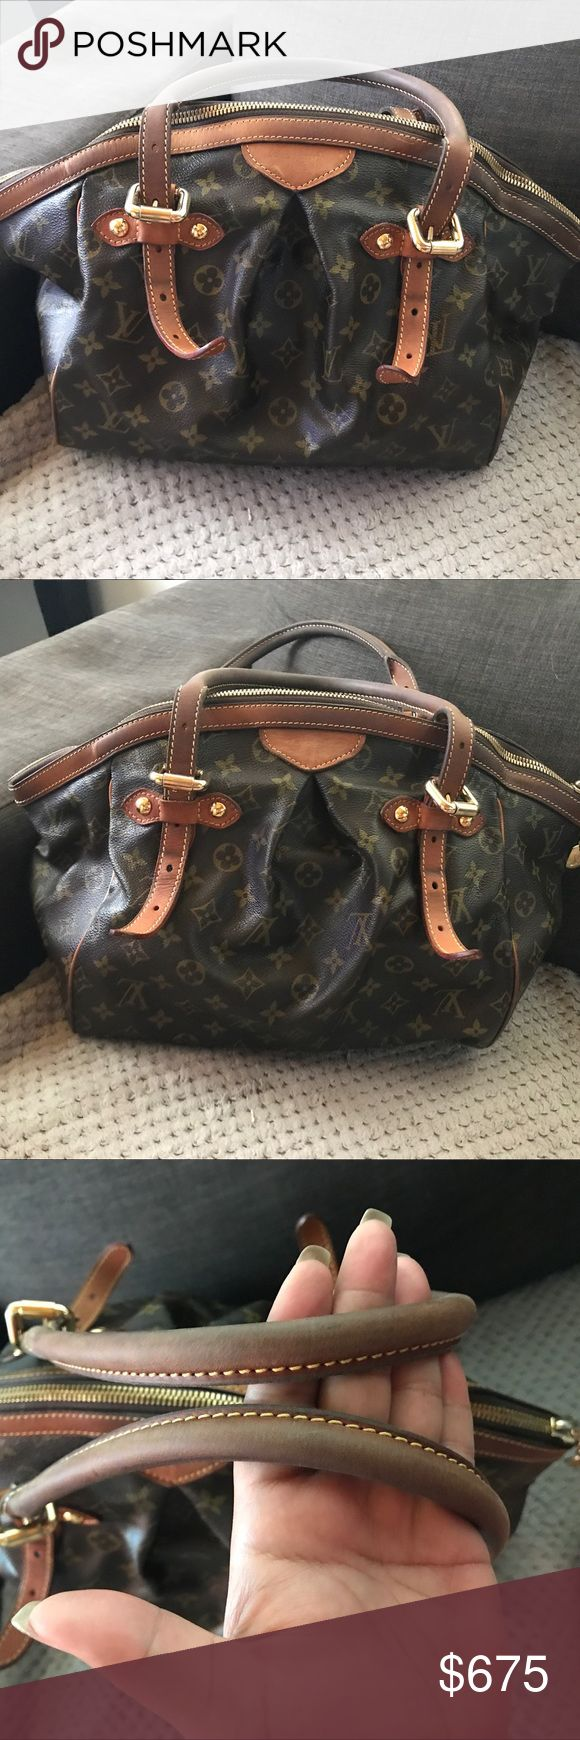 Louis Vuitton Tivoli GM Louis Vuitton Tivoli GM preloved. Handles have darkened and has small cracks on canvas as pictured (where bag folds). Was previously authenticated by memes treasure. Louis Vuitton Bags Totes